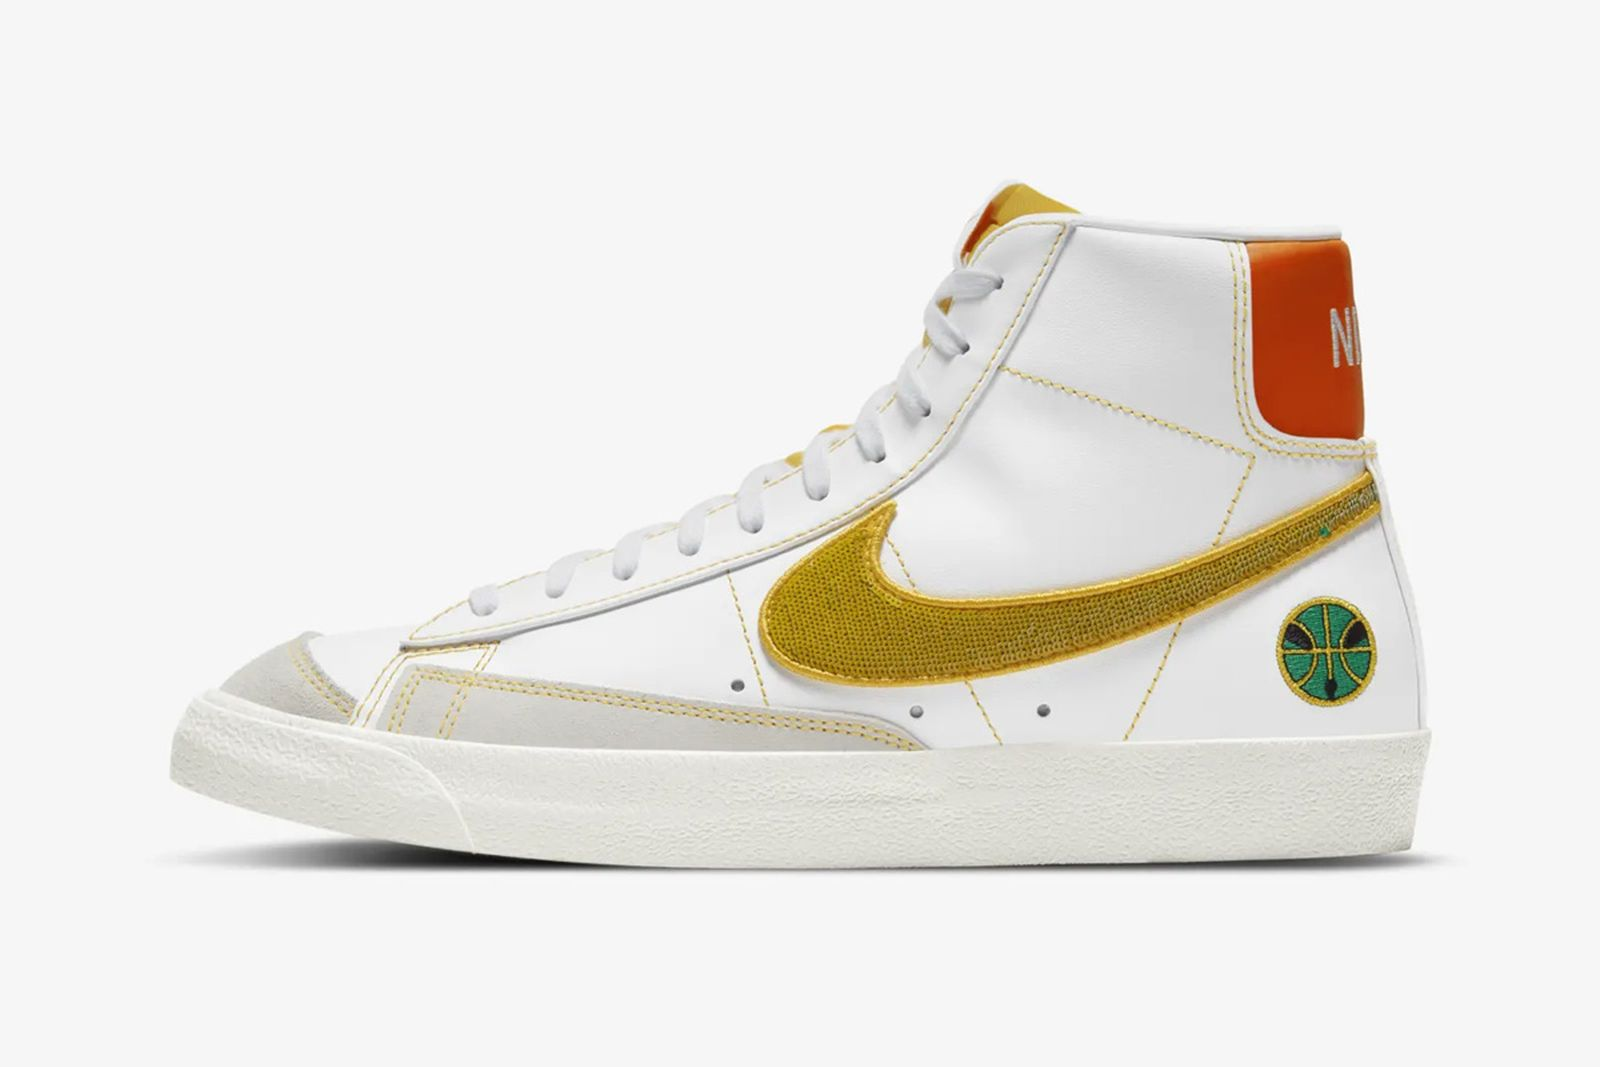 nike-air-force-1-rayguns-release-date-price-06